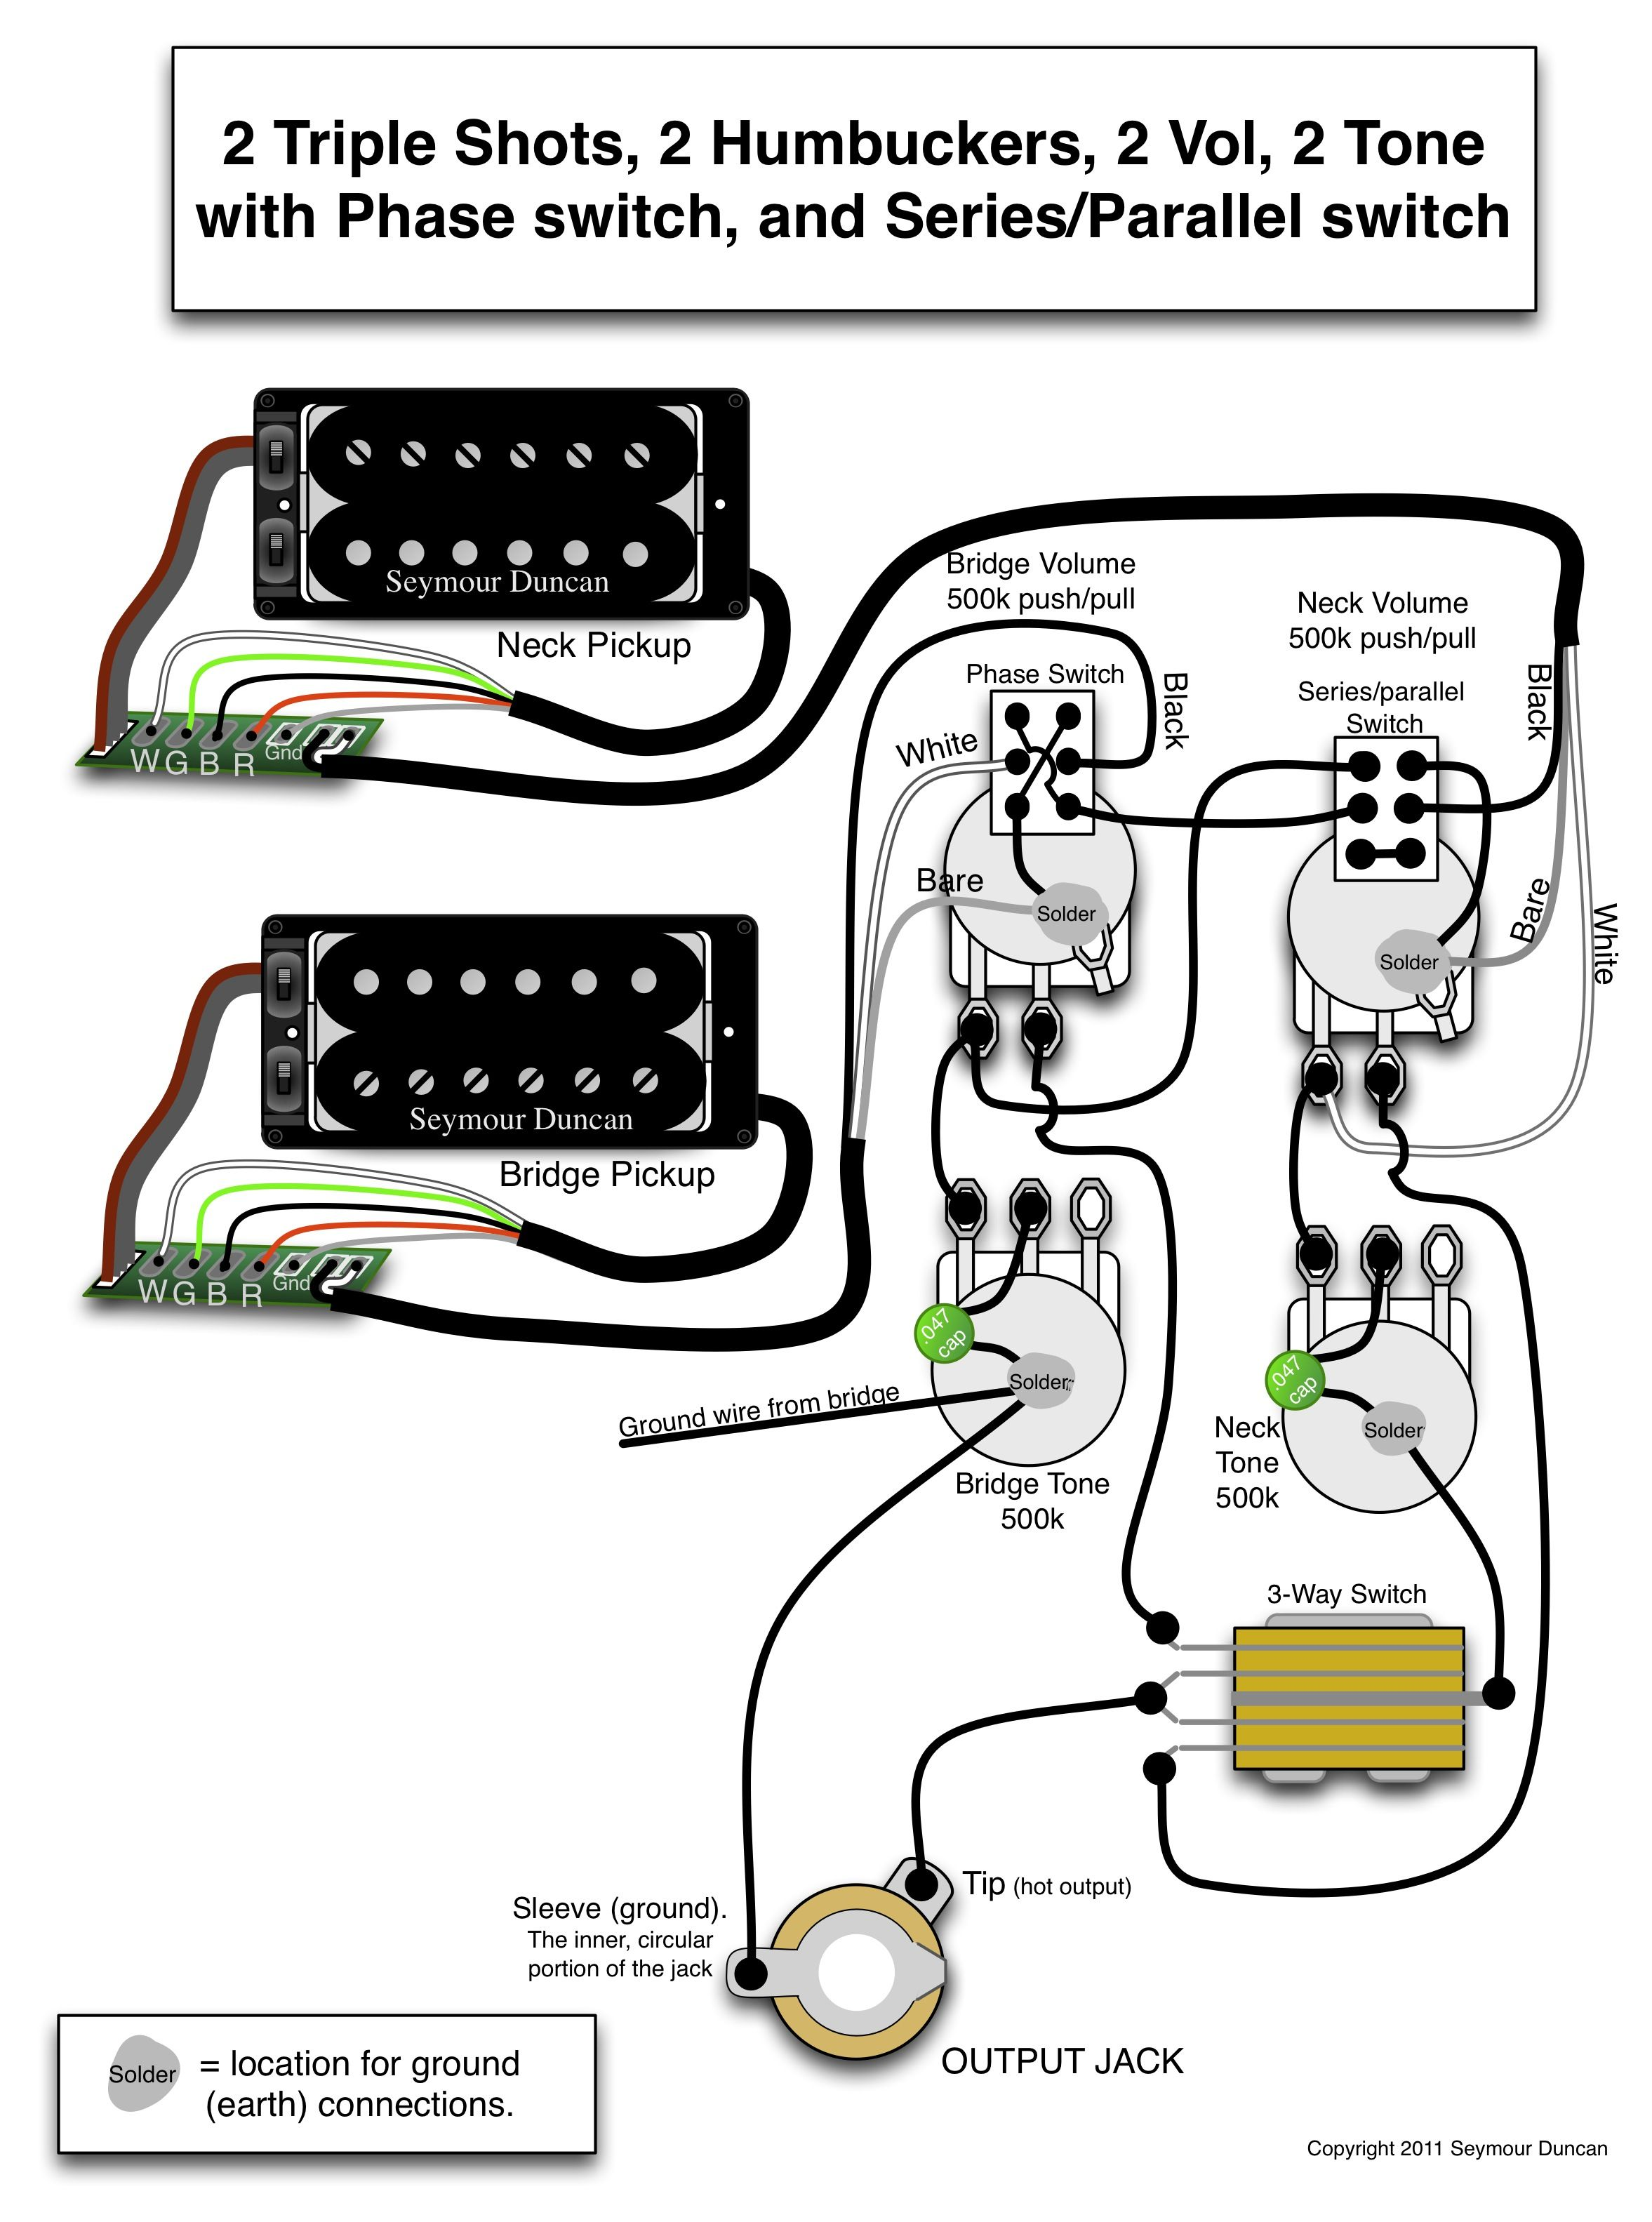 Seymour Duncan Wiring Diagram 2 Triple Shots Humbuckers Vol Charvel Tone One With Phase Switch And The Other Series Parallel